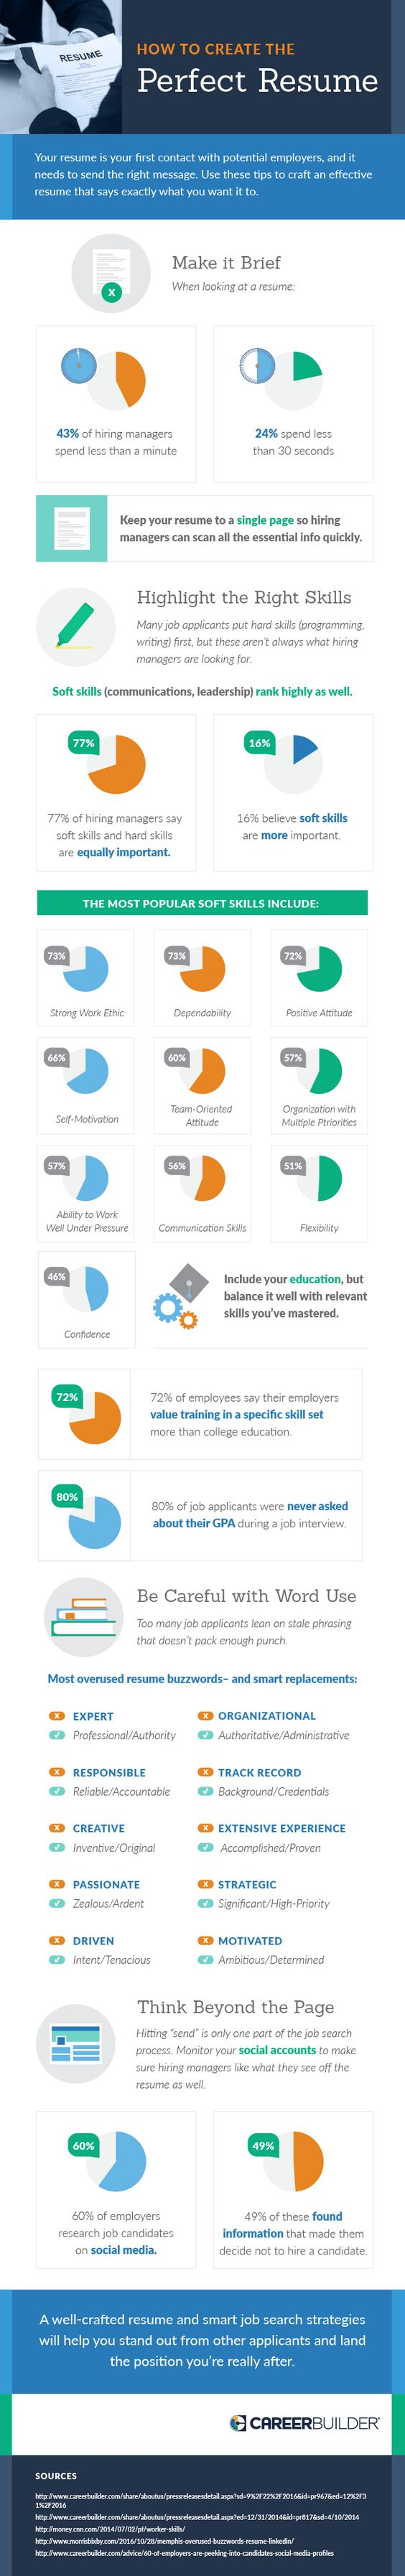 the perfect resume infographic